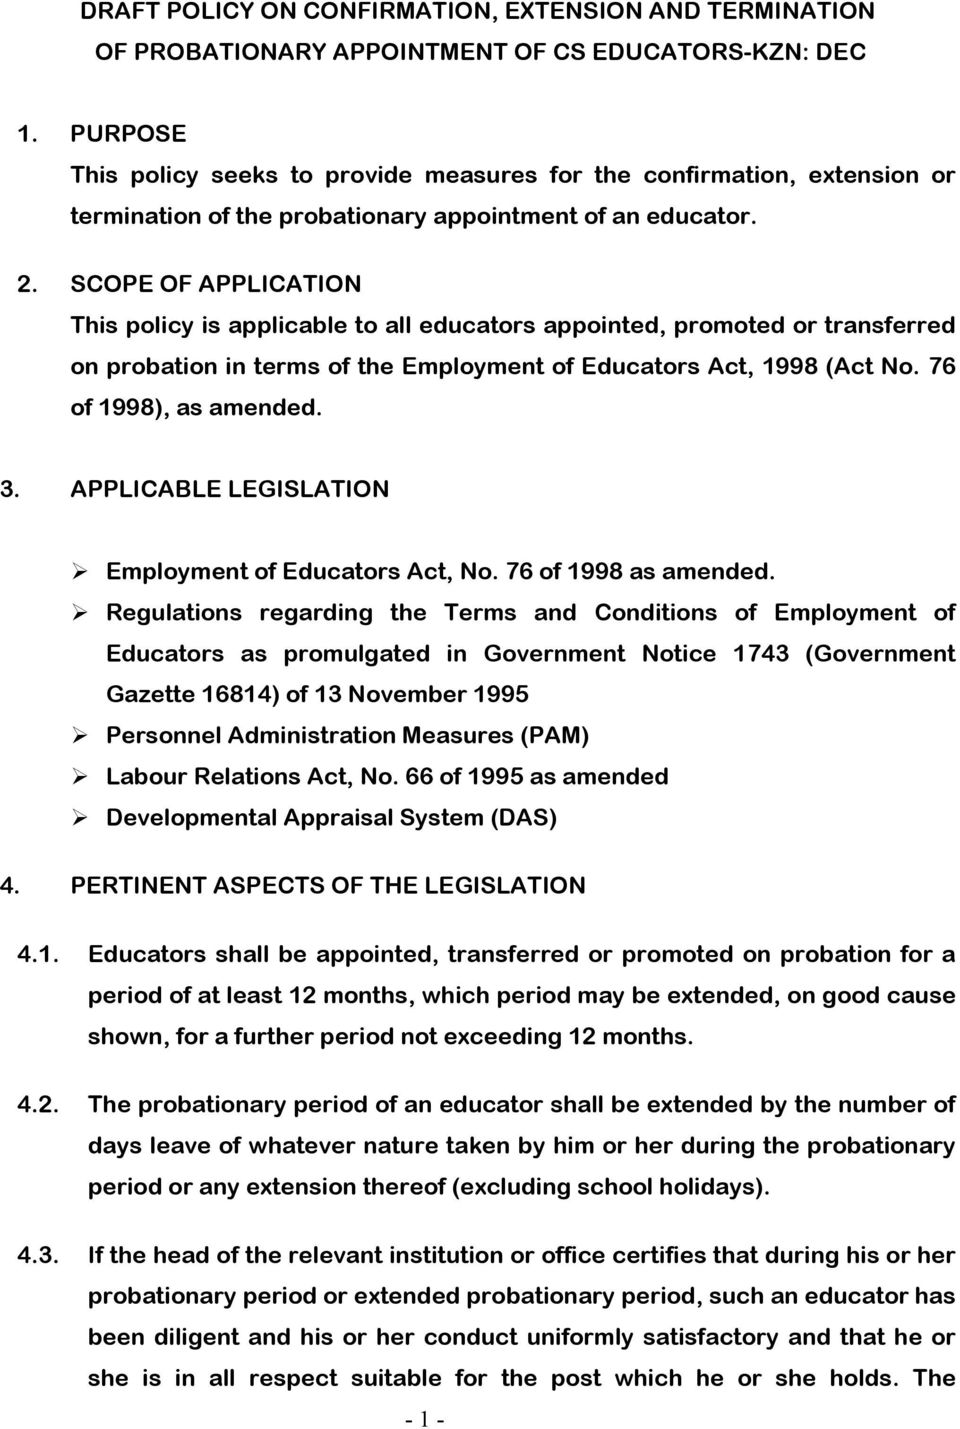 SCOPE OF APPLICATION This policy is applicable to all educators appointed, promoted or transferred on probation in terms of the Employment of Educators Act, 1998 (Act No. 76 of 1998), as amended. 3.